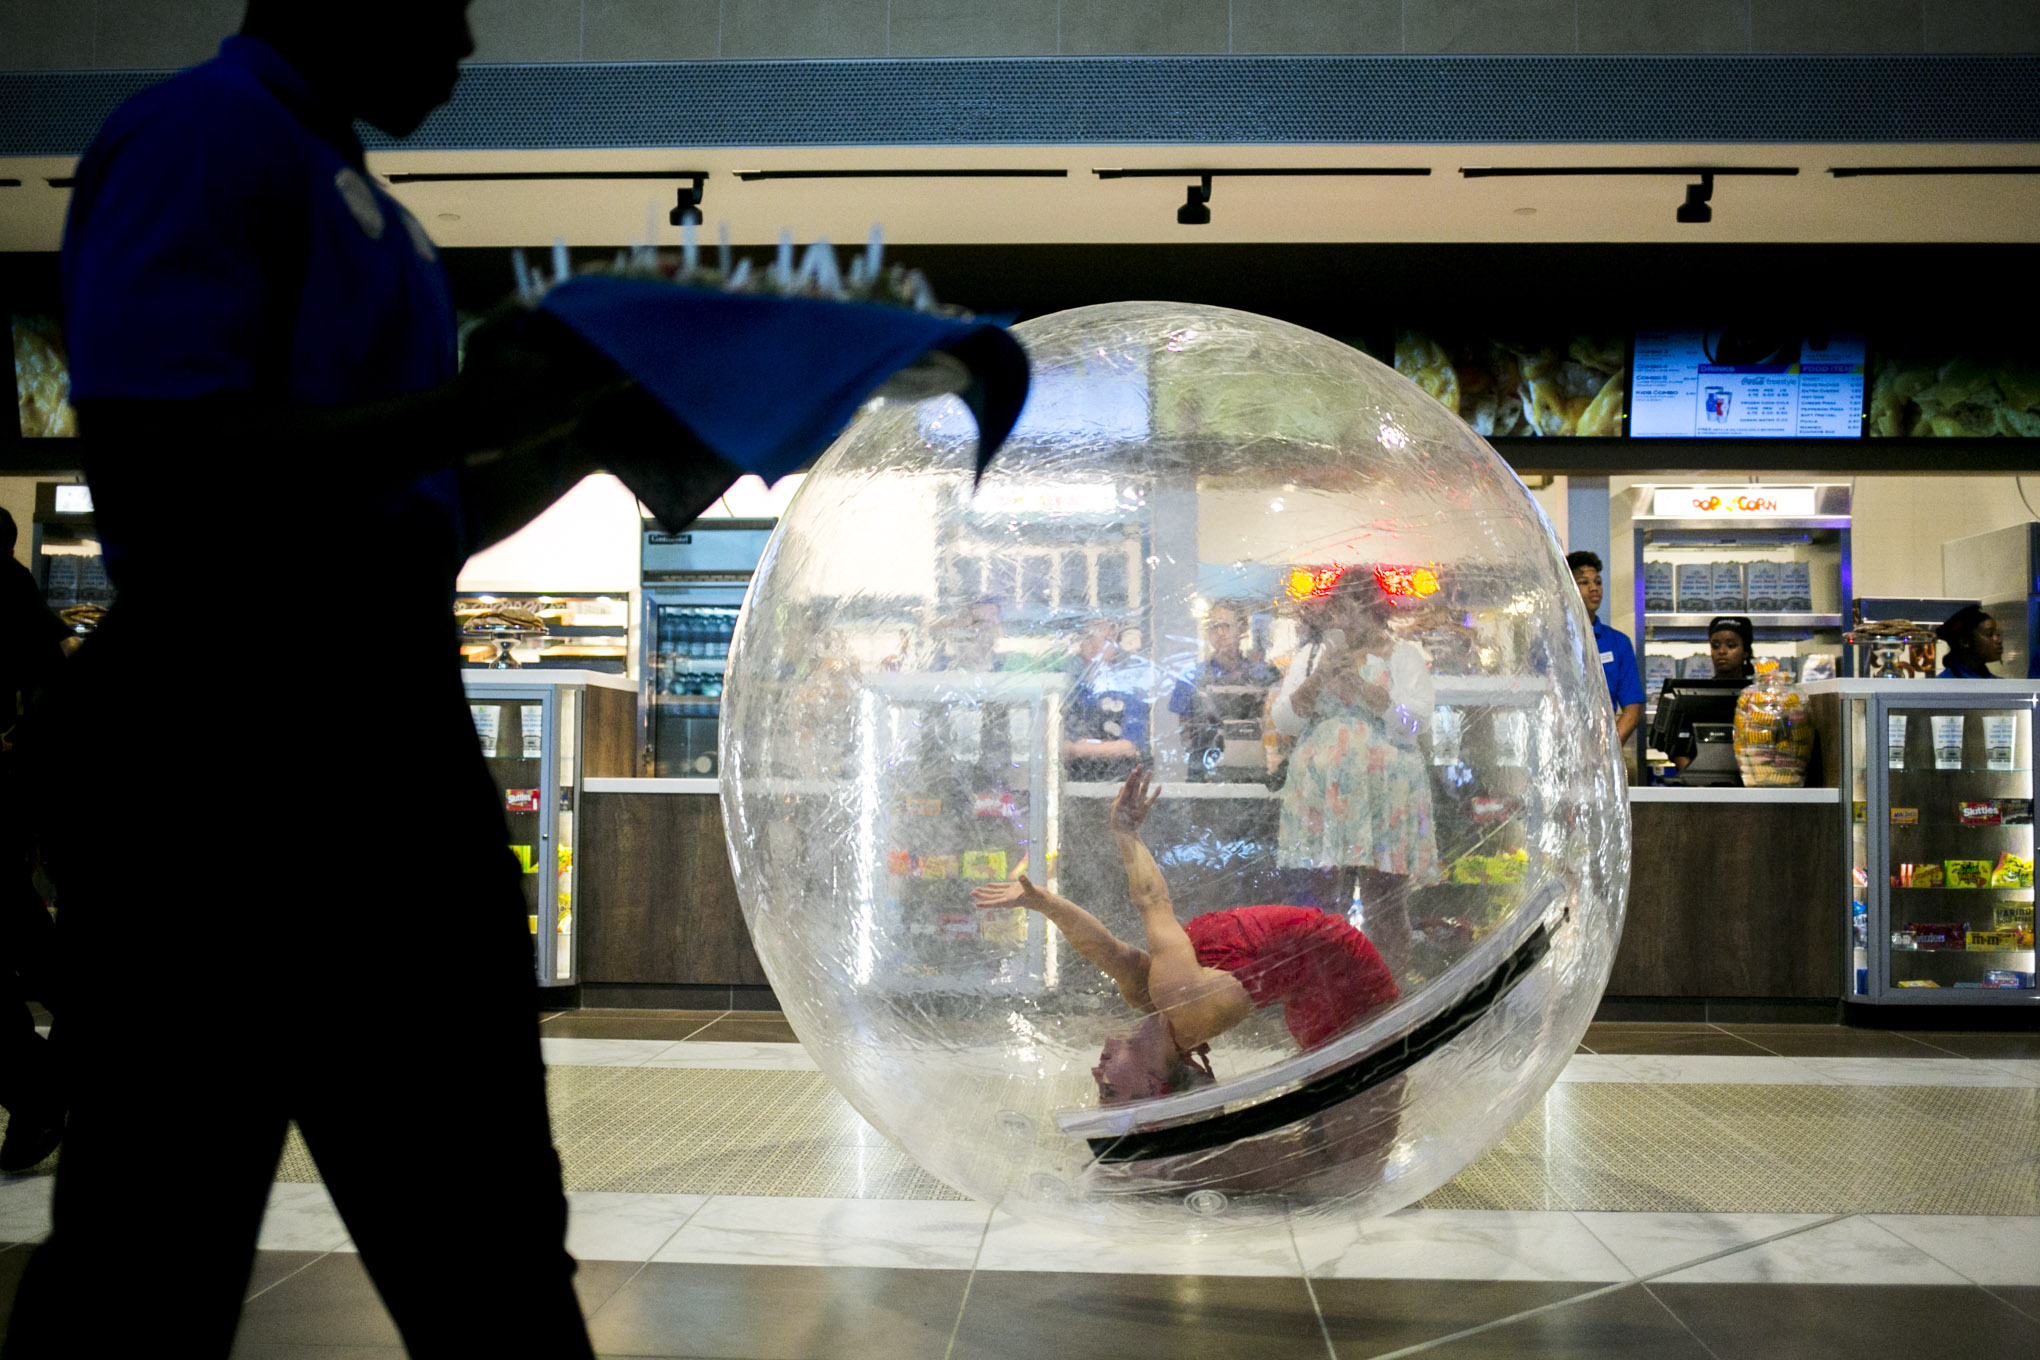 Waiters pass out food while a dancer in a plastic ball performs. Photo by Kathryn Boyd-Batstone.